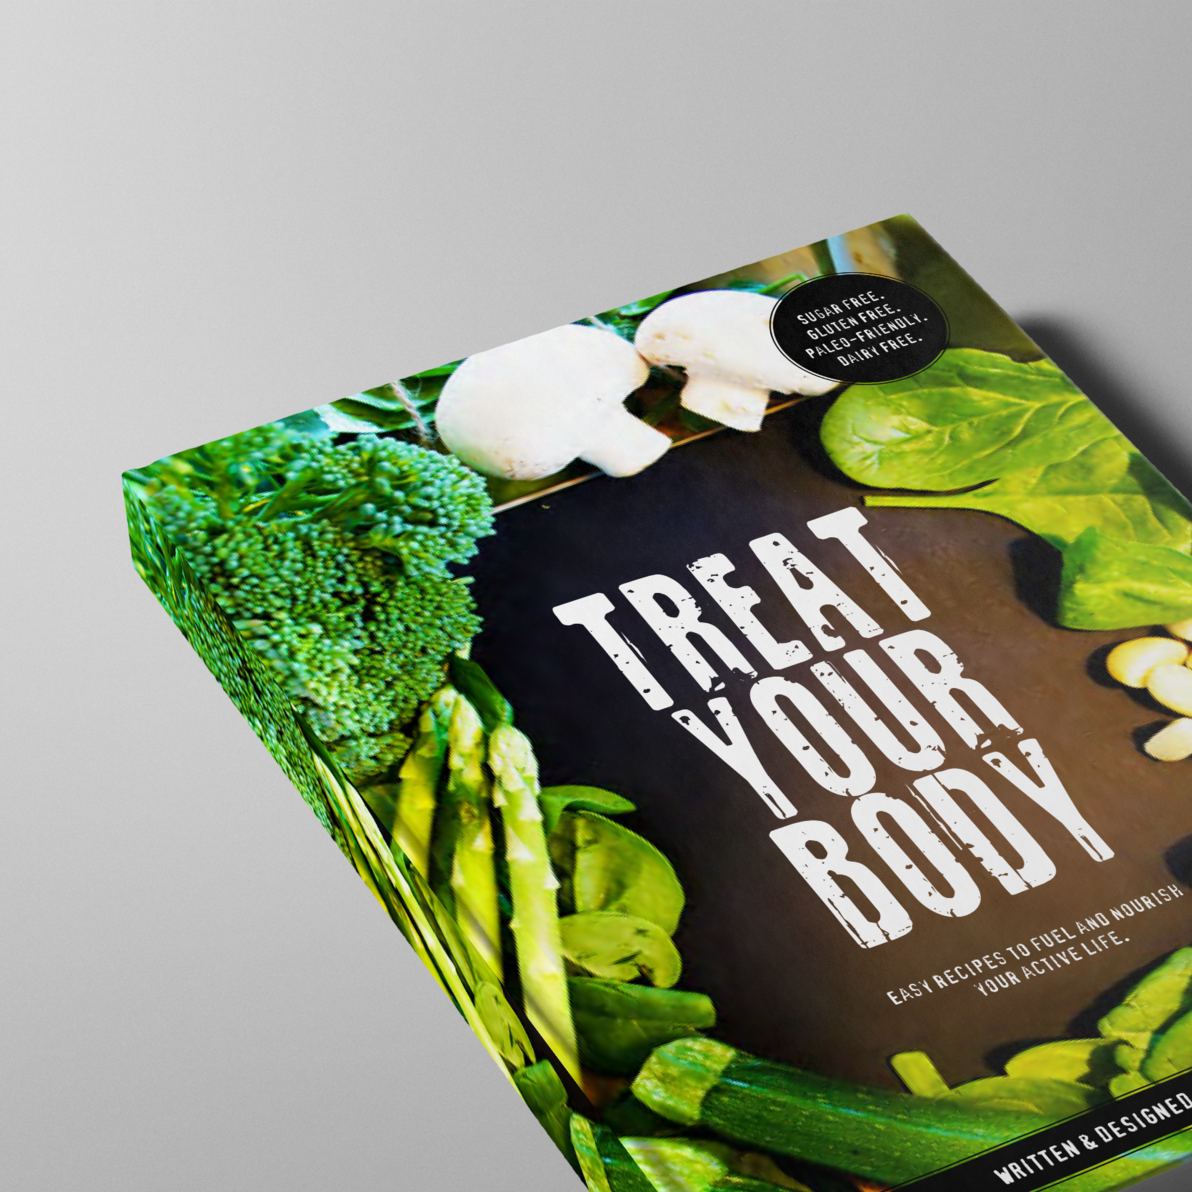 TREAT YOUR BODY  [BOOK DESIGN]